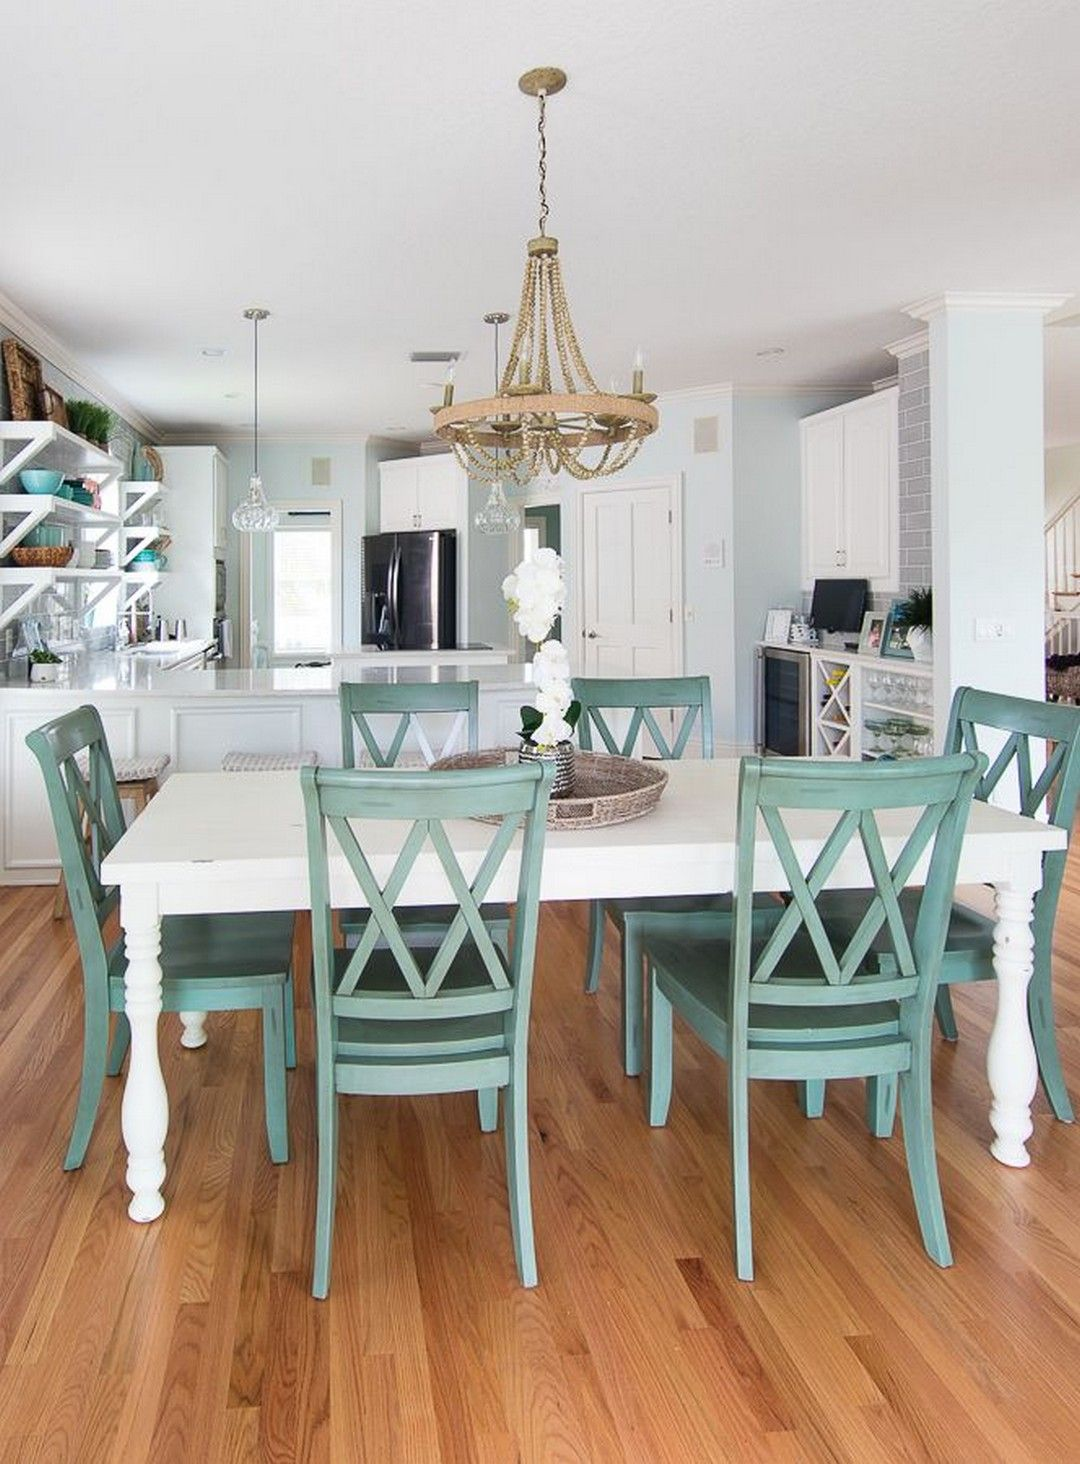 33 Beautiful Coastal Dining Room Decorations images